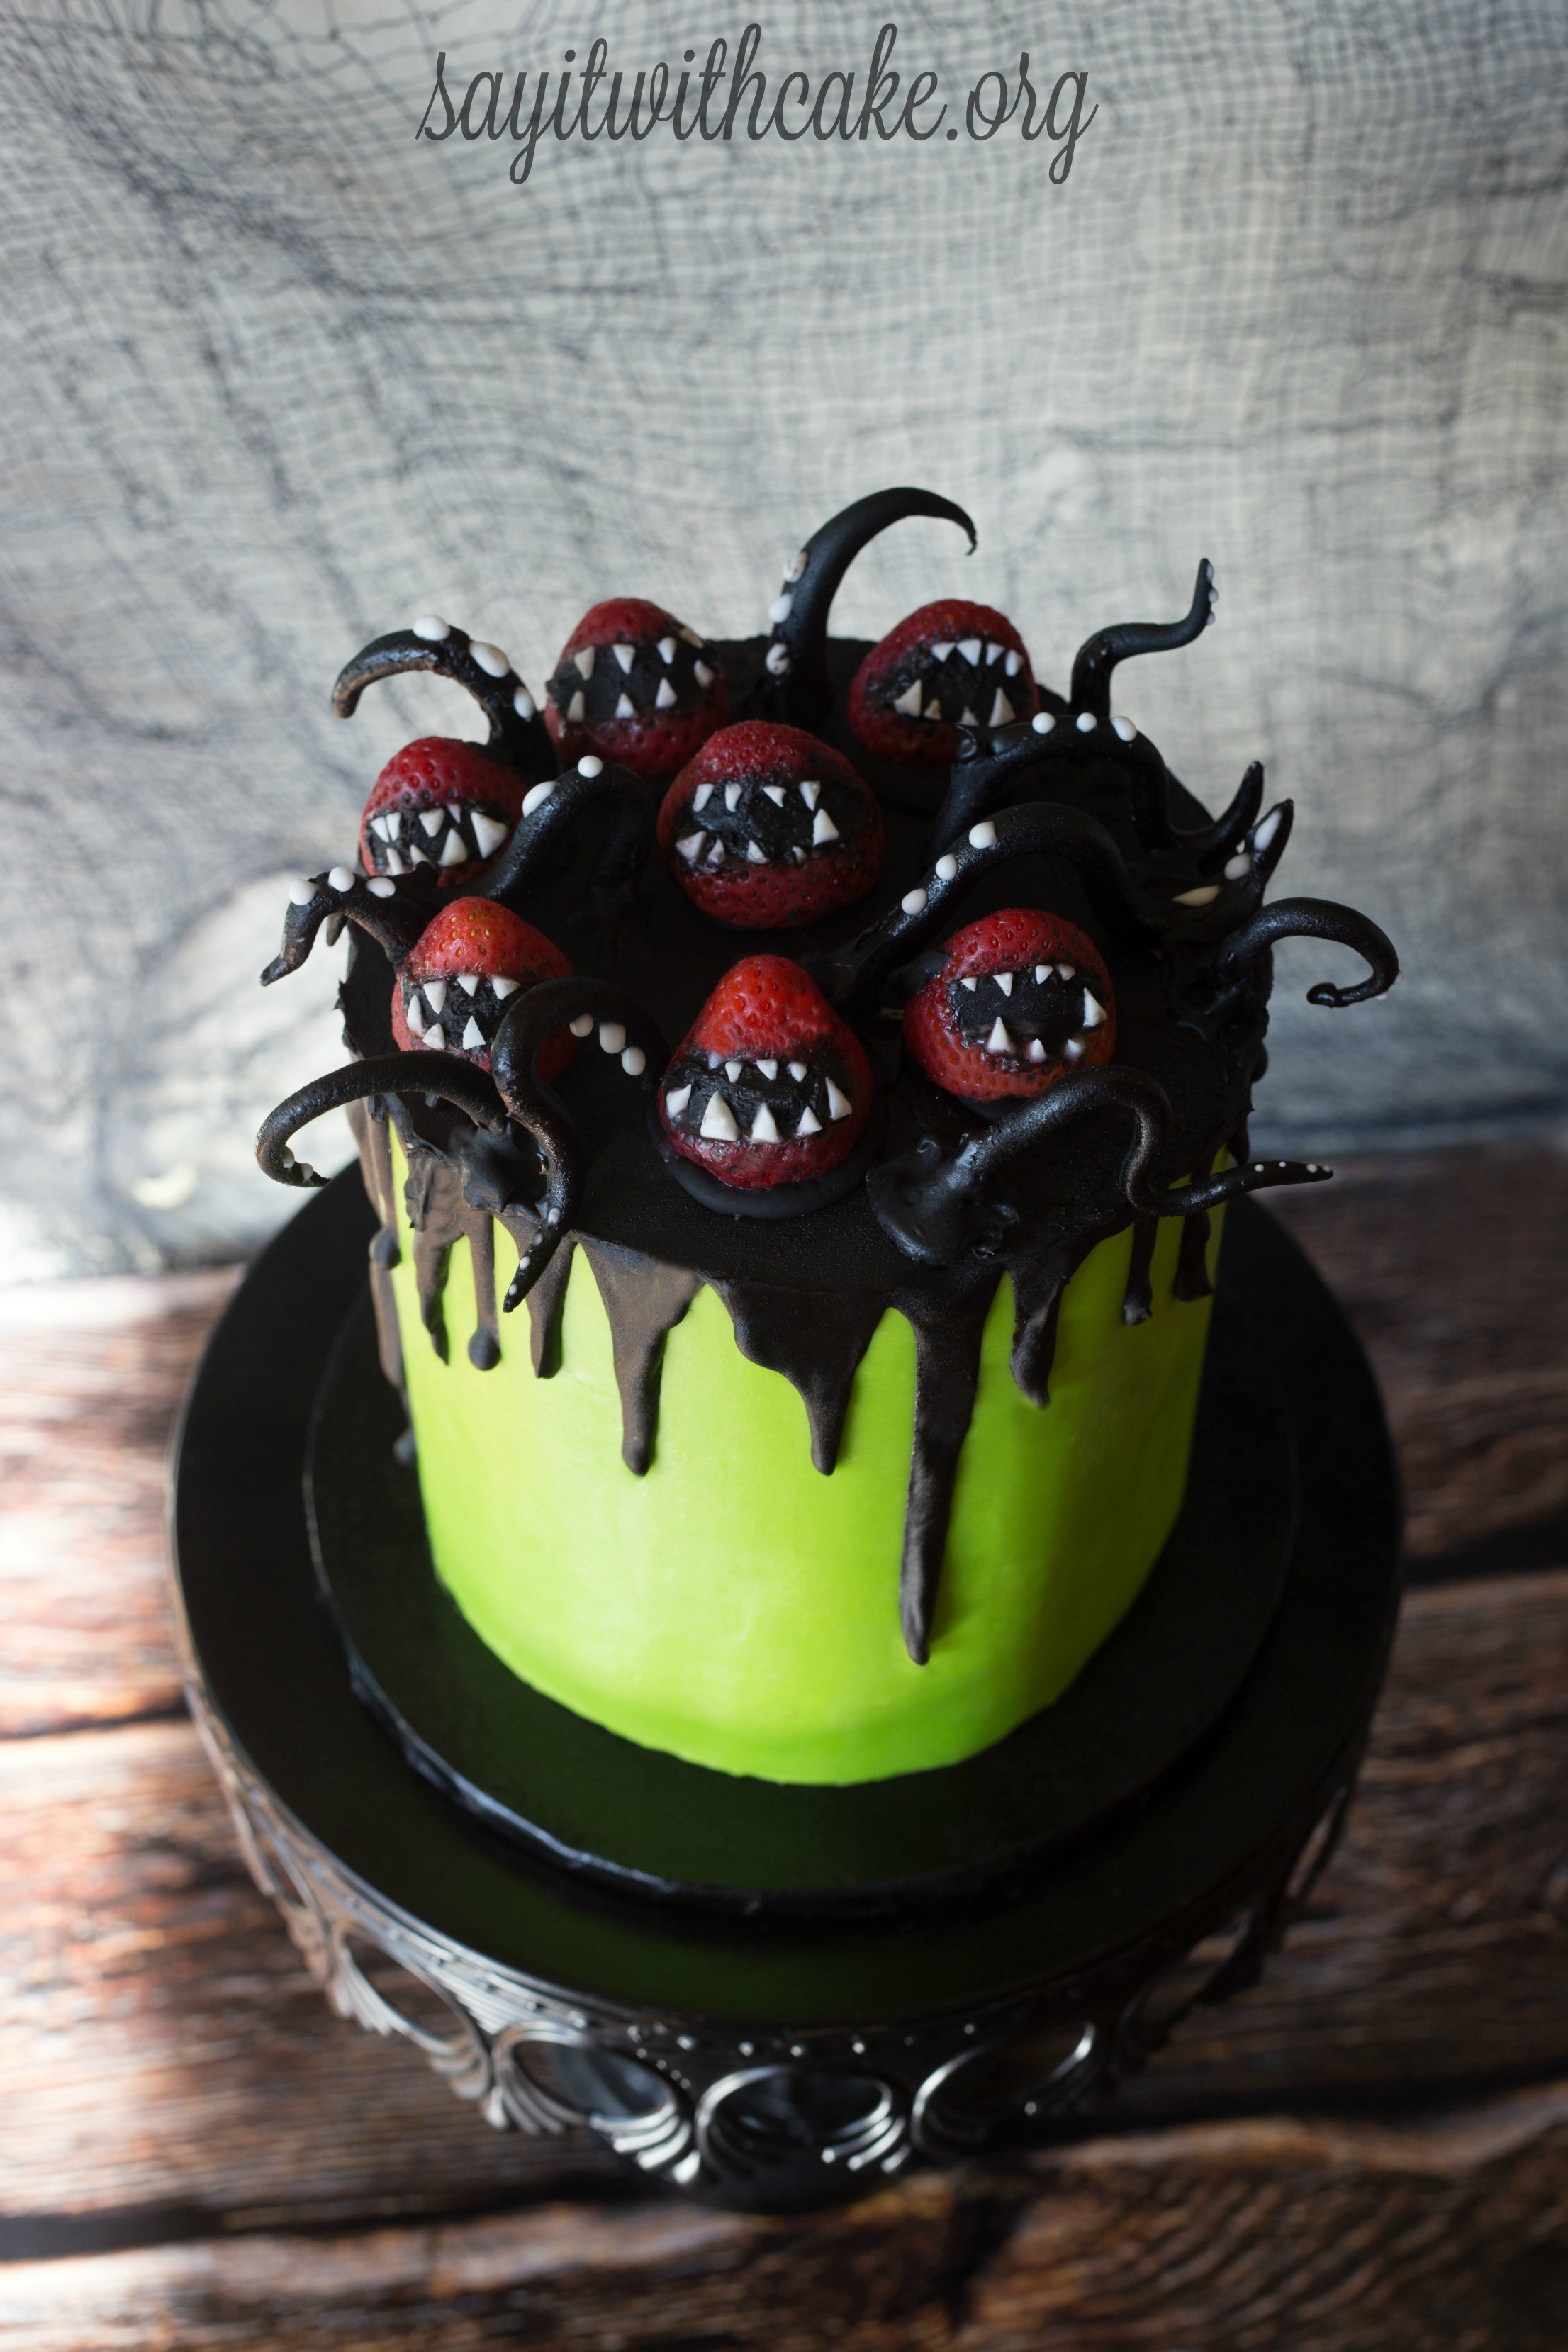 Creepy Halloween Cakes  Creepy Halloween Cake – Say it With Cake